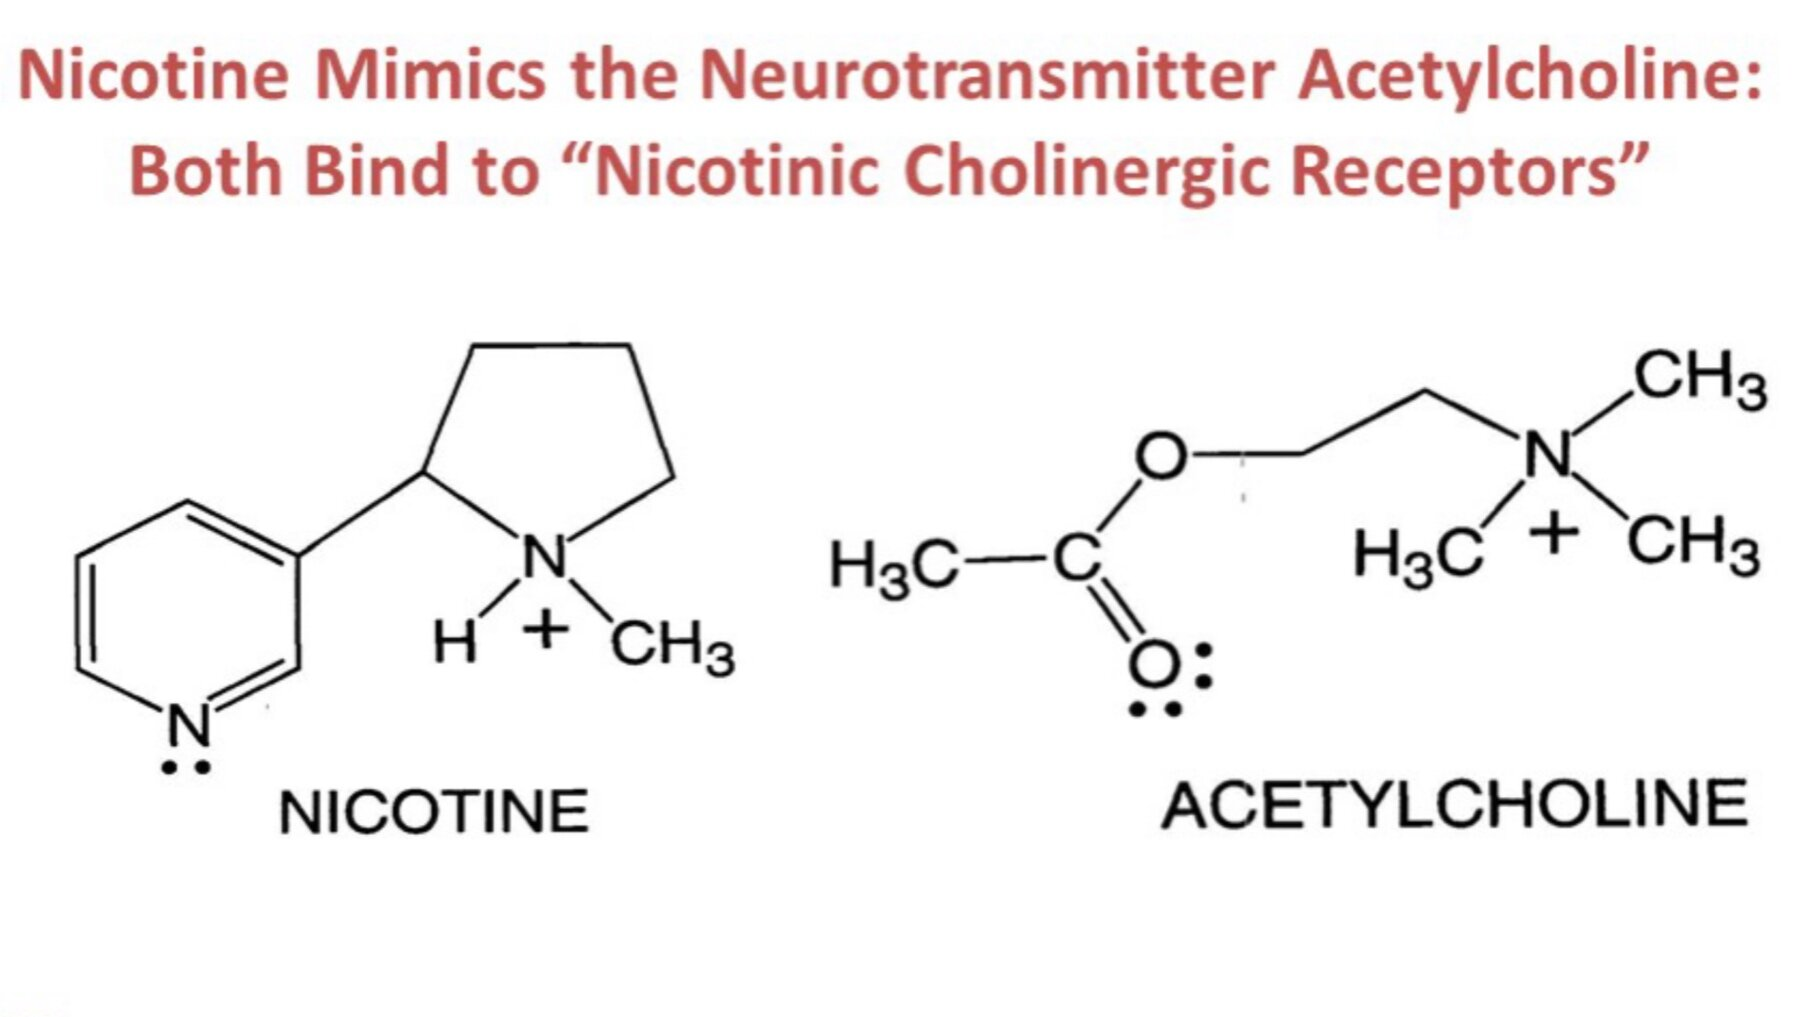 Mode of Action - Nicotinic Cholinergic Receptors